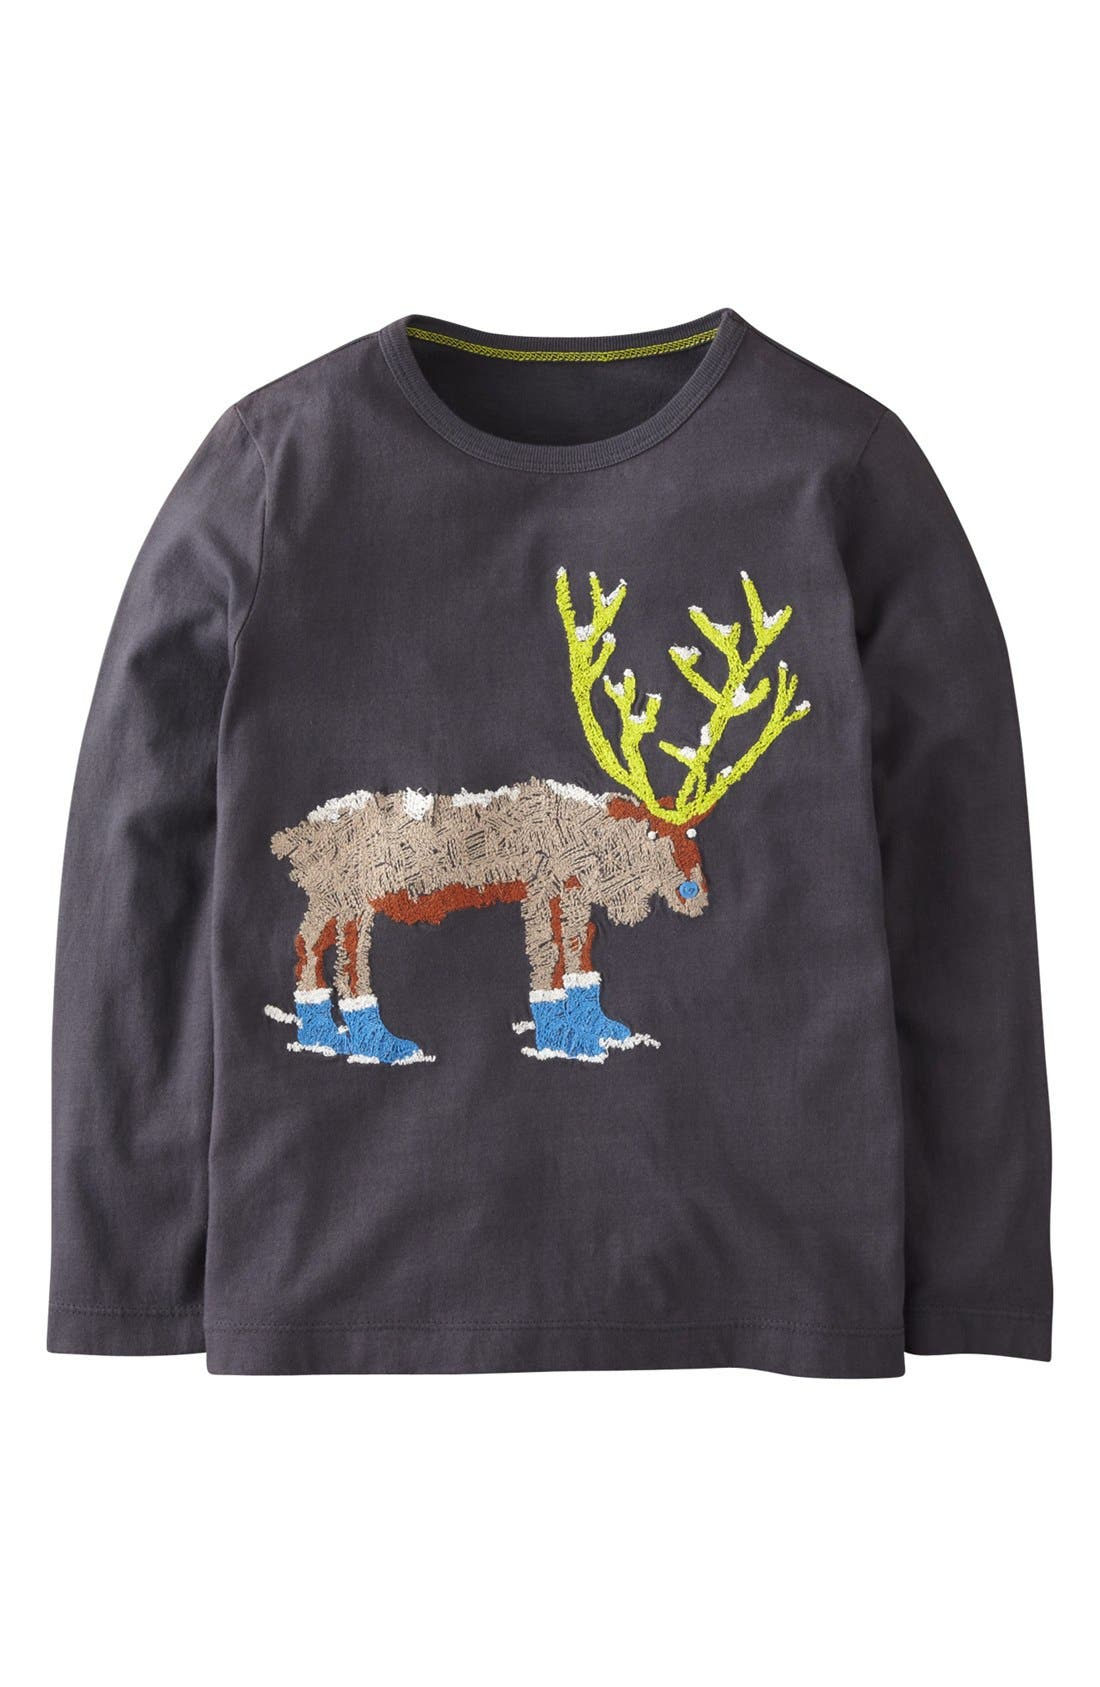 Alternate Image 1 Selected - Mini Boden 'Super Stitch' Long Sleeve T-Shirt (Toddler Boys, Little Boys & Big Boys)